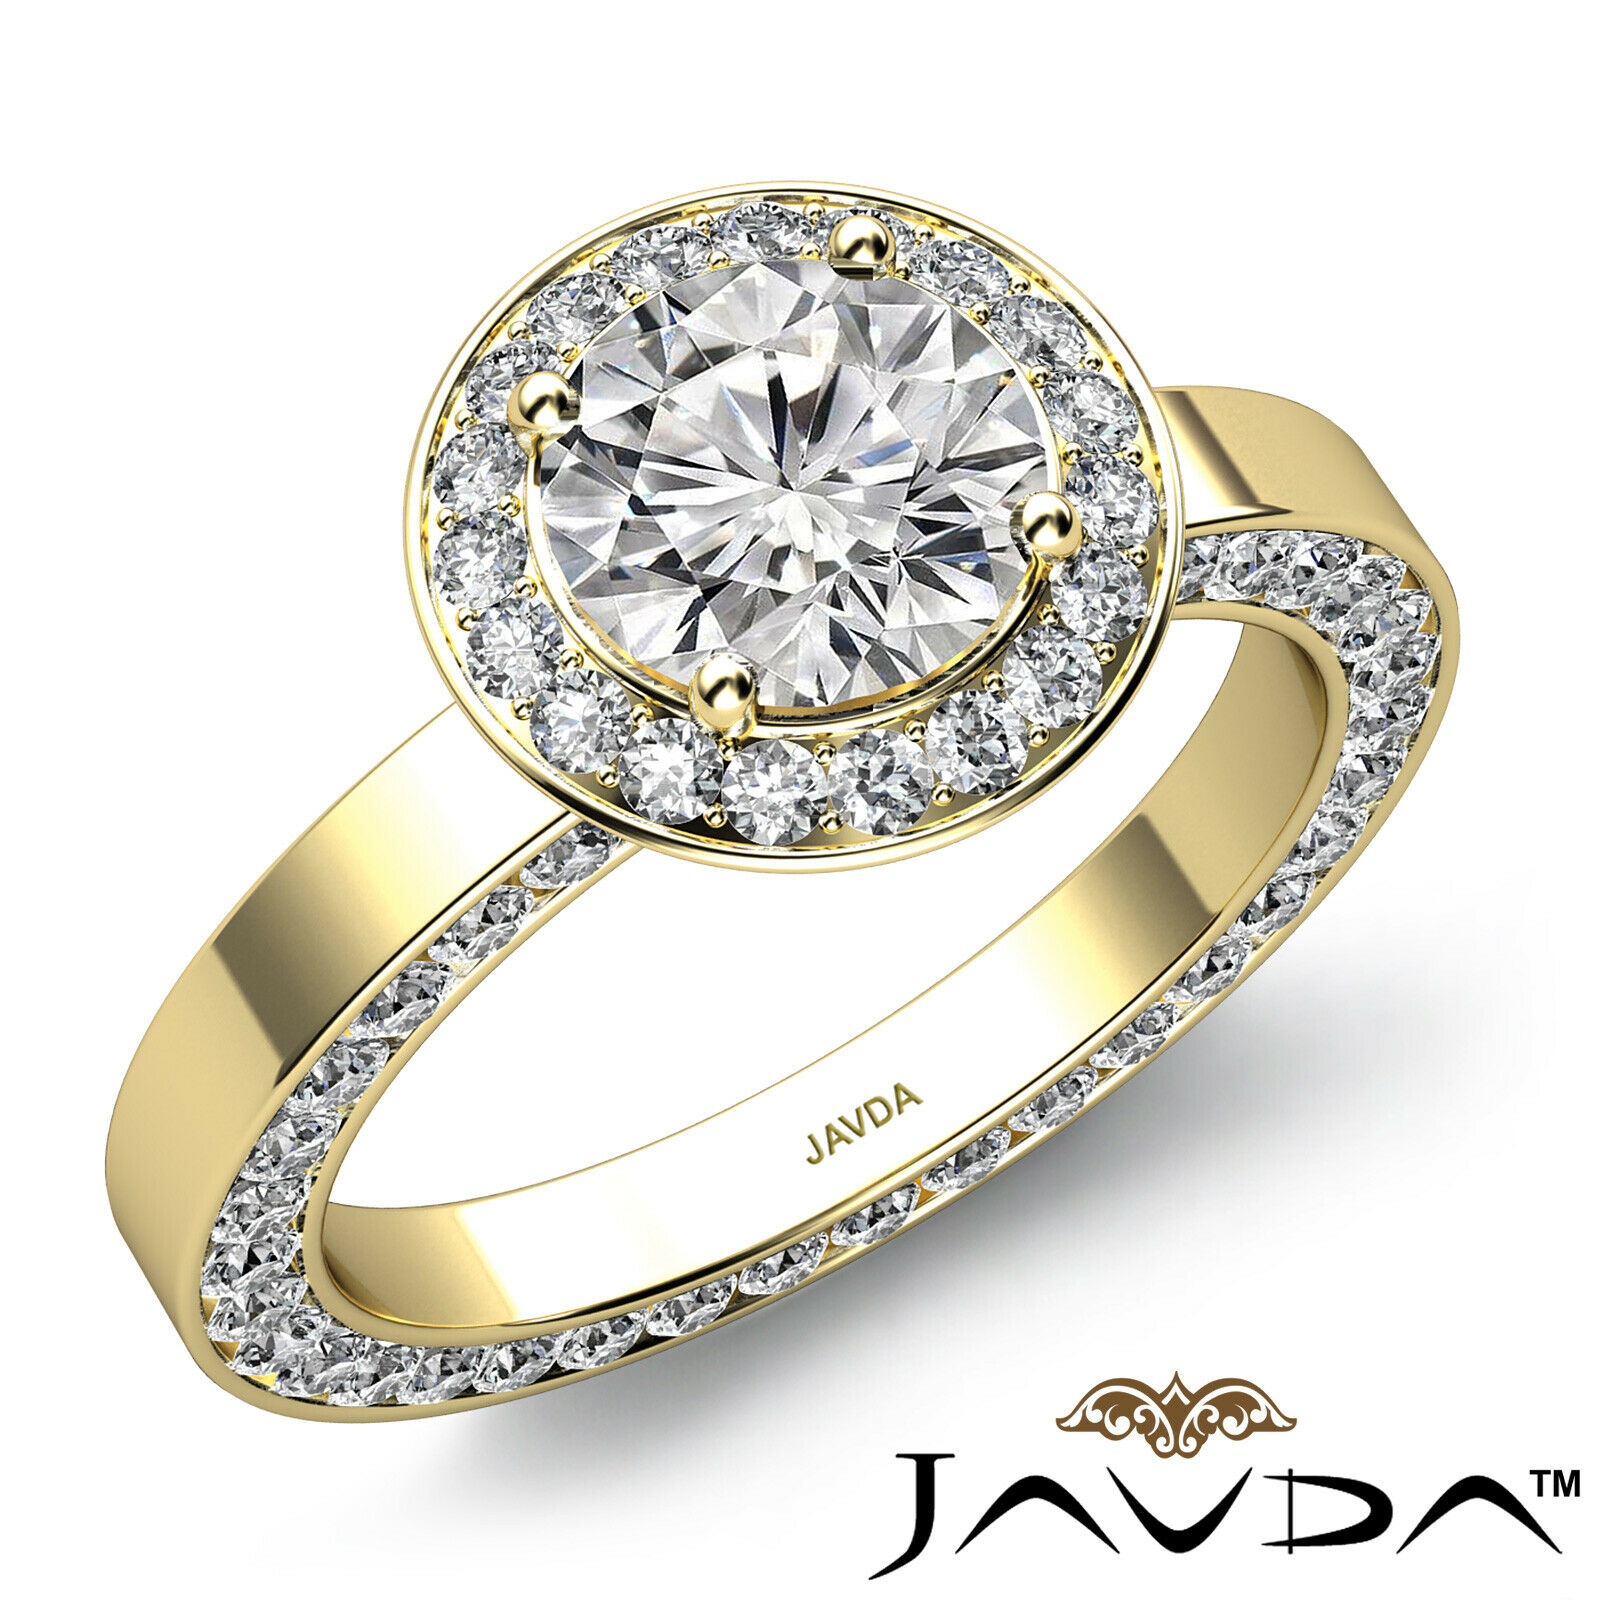 Eternity Channel Set Round Cut Diamond Engagement Filigree Ring GIA H VS2 2.83Ct